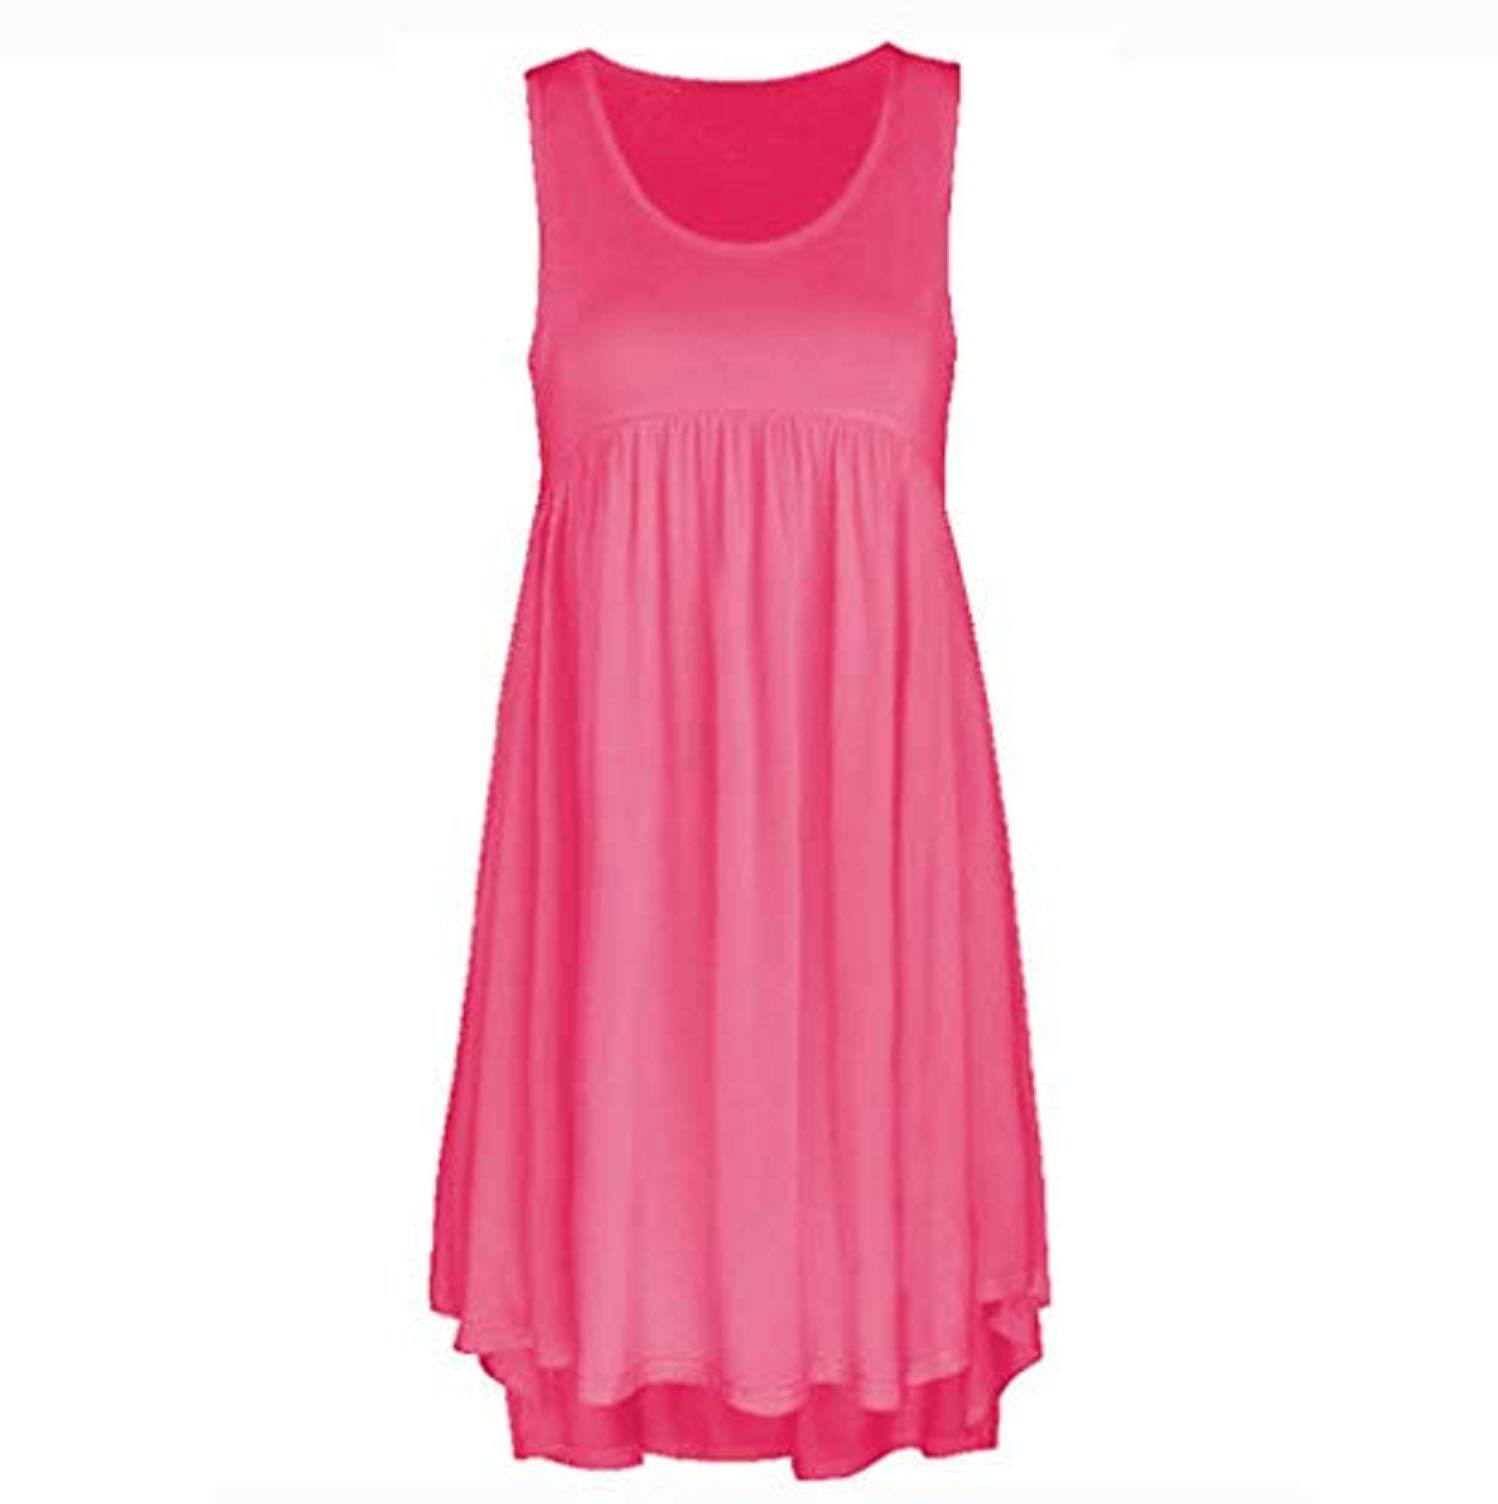 Summer Dresses for Toddler Girls,Women O Neck Casual Lace Sleeveless Above Knee Dress Loose Party Mini Dress,Pink,XXXXXL